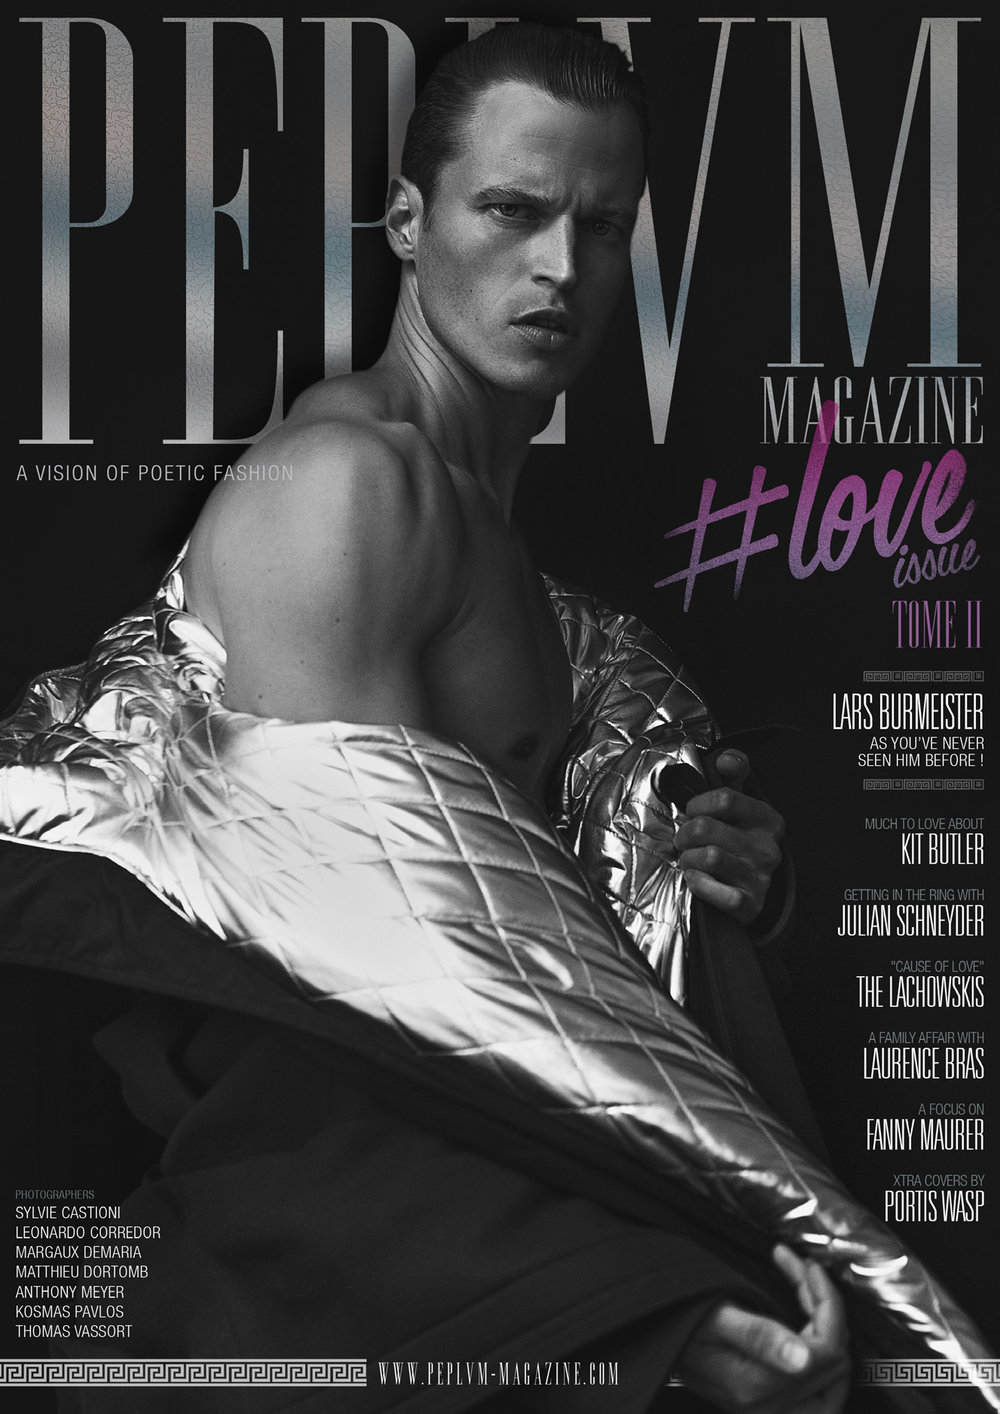 PEPLVMlars - tome 2 - love issue - with 5 covers.jpg